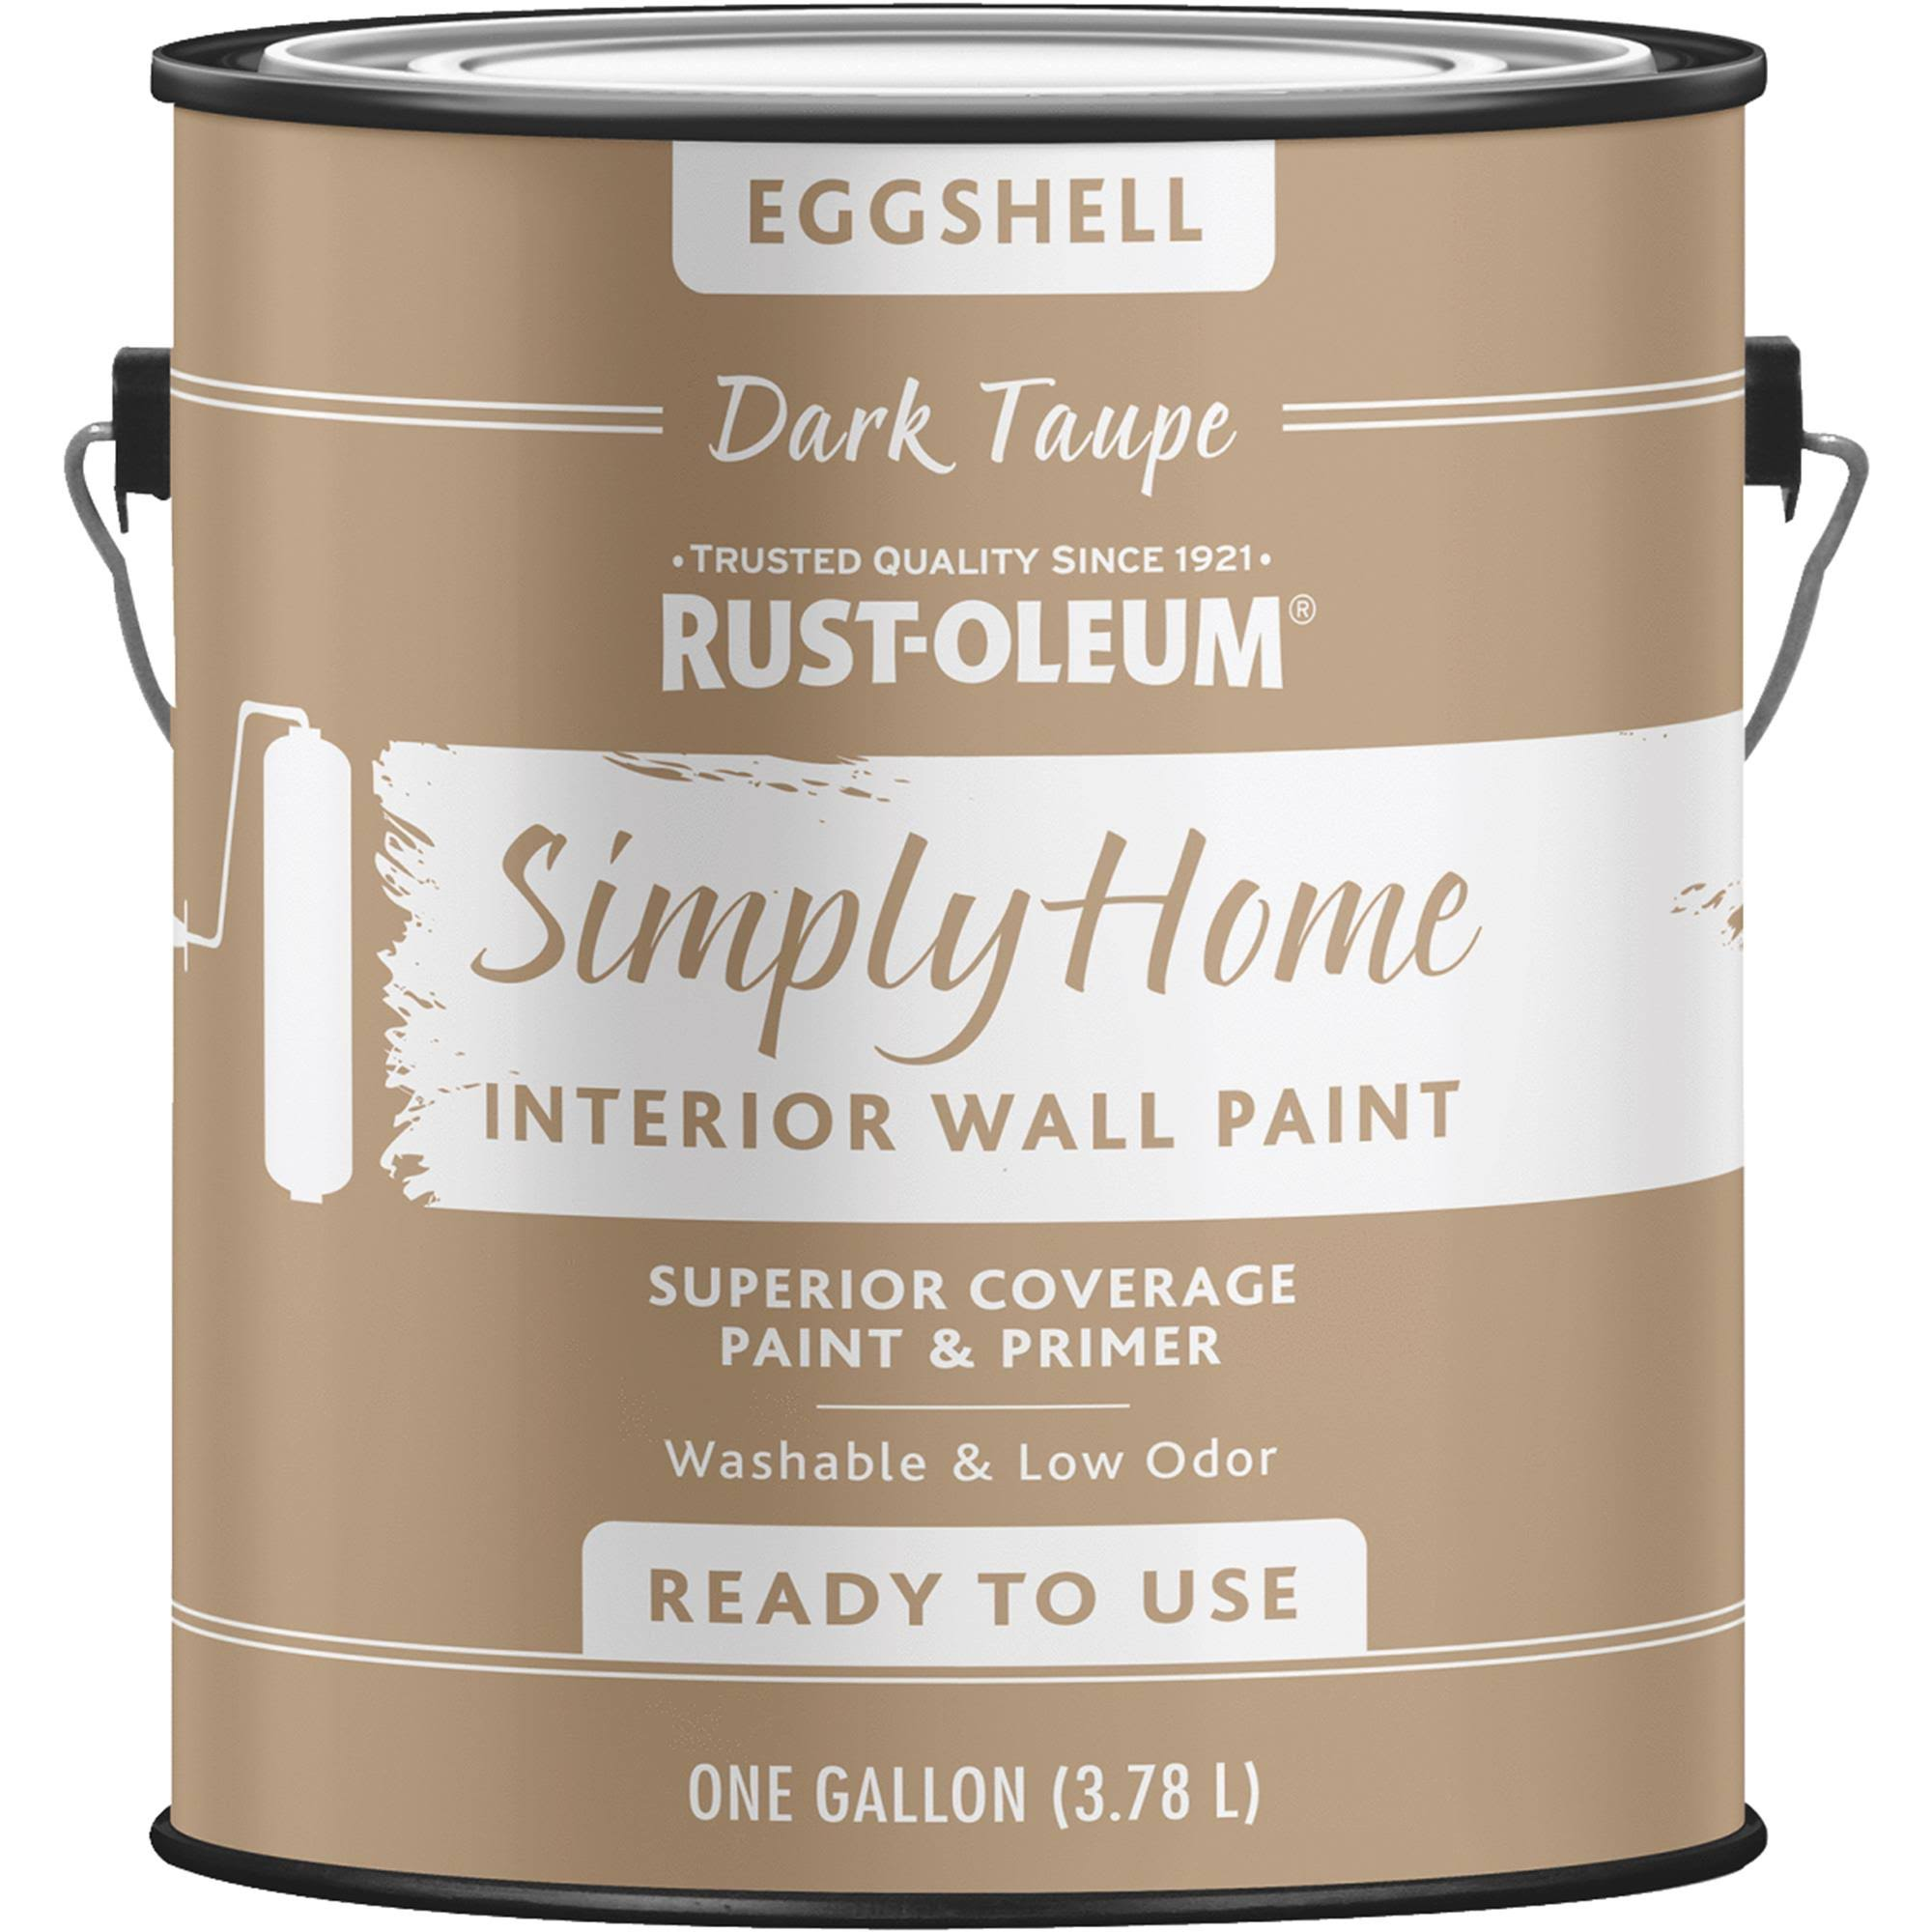 Rust Oleum Simply Home Interior Wall Paint - Eggshell Smoked Navy, 1gal